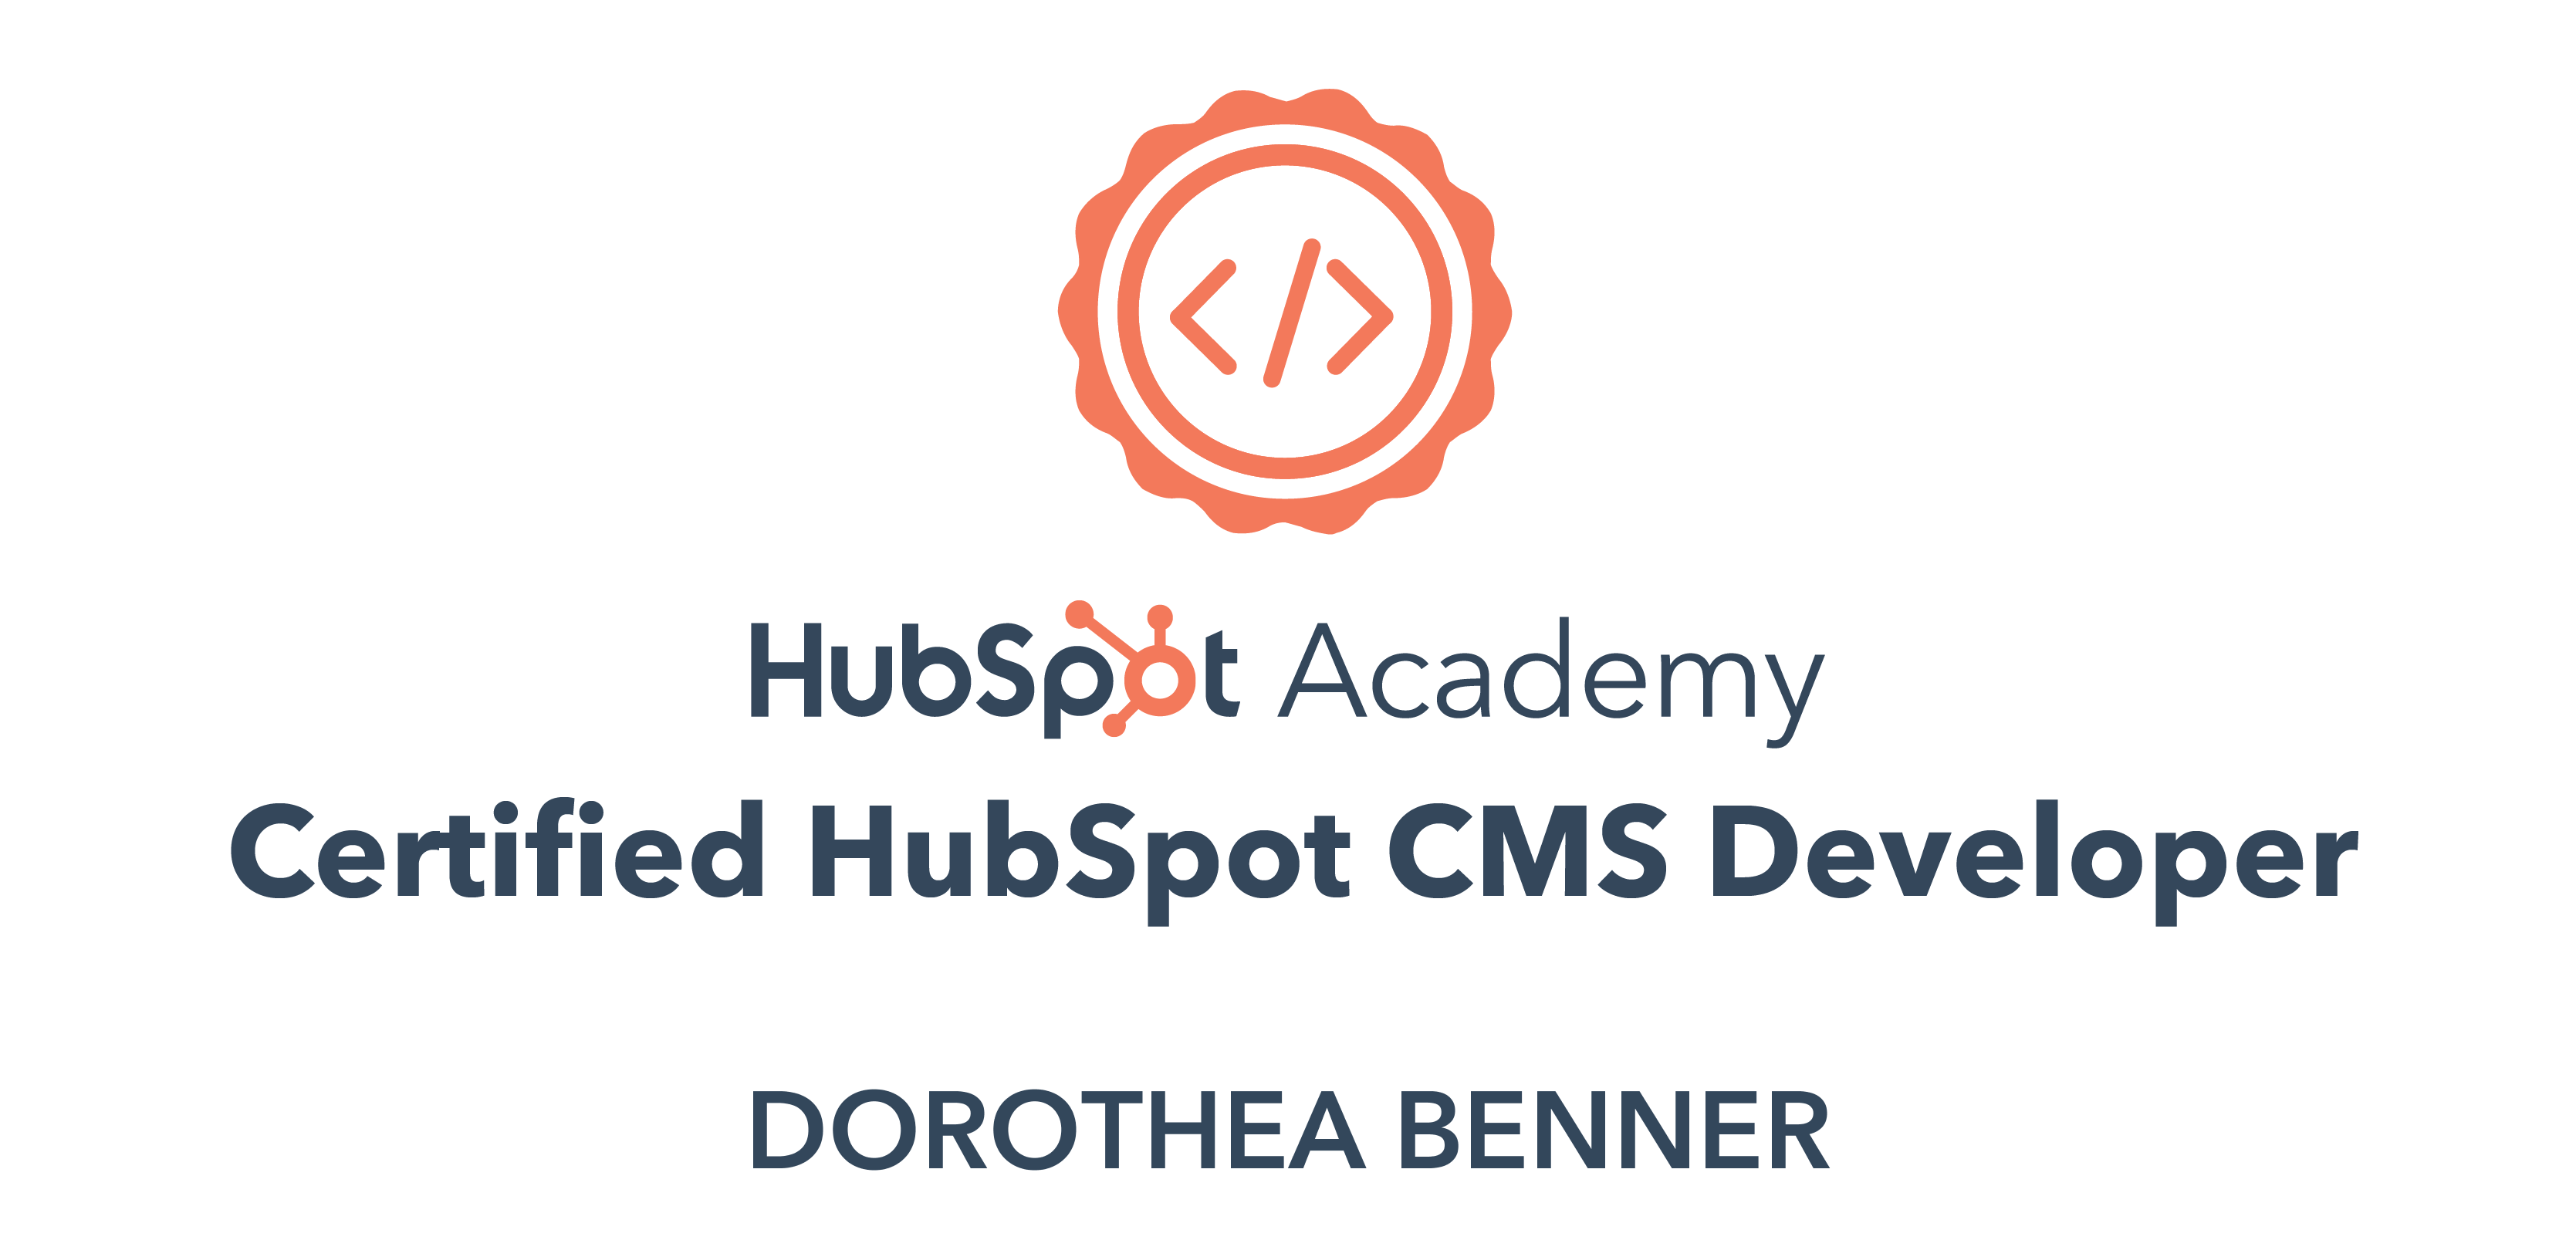 HubSpot Certiefied CMS Developer